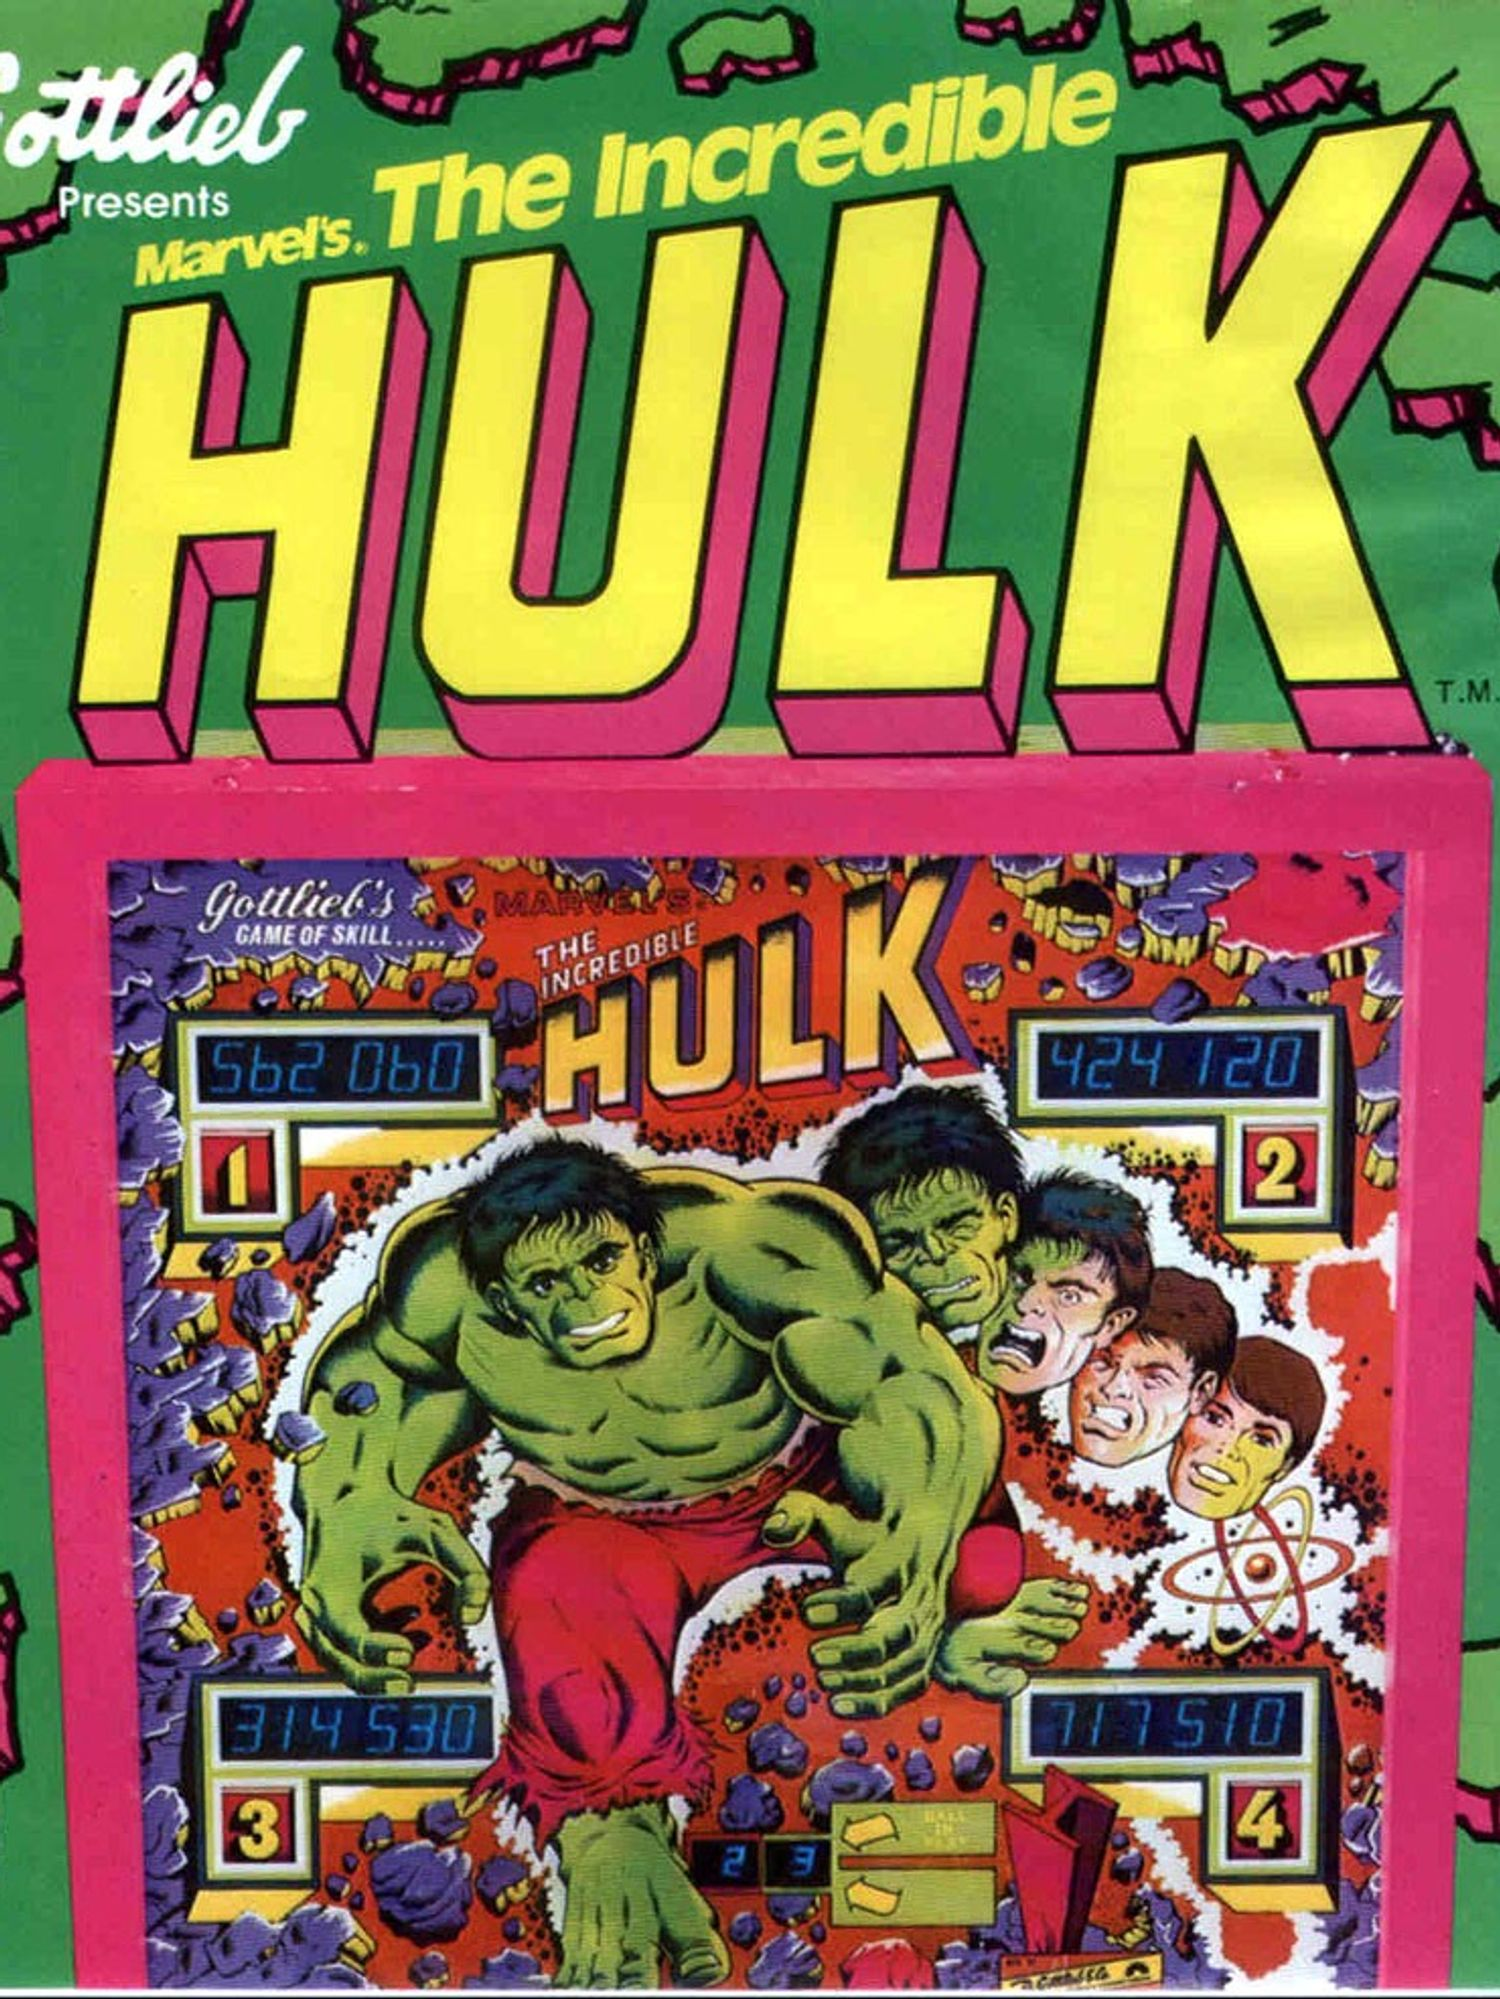 The Incredible Hulk Flyer Page 2